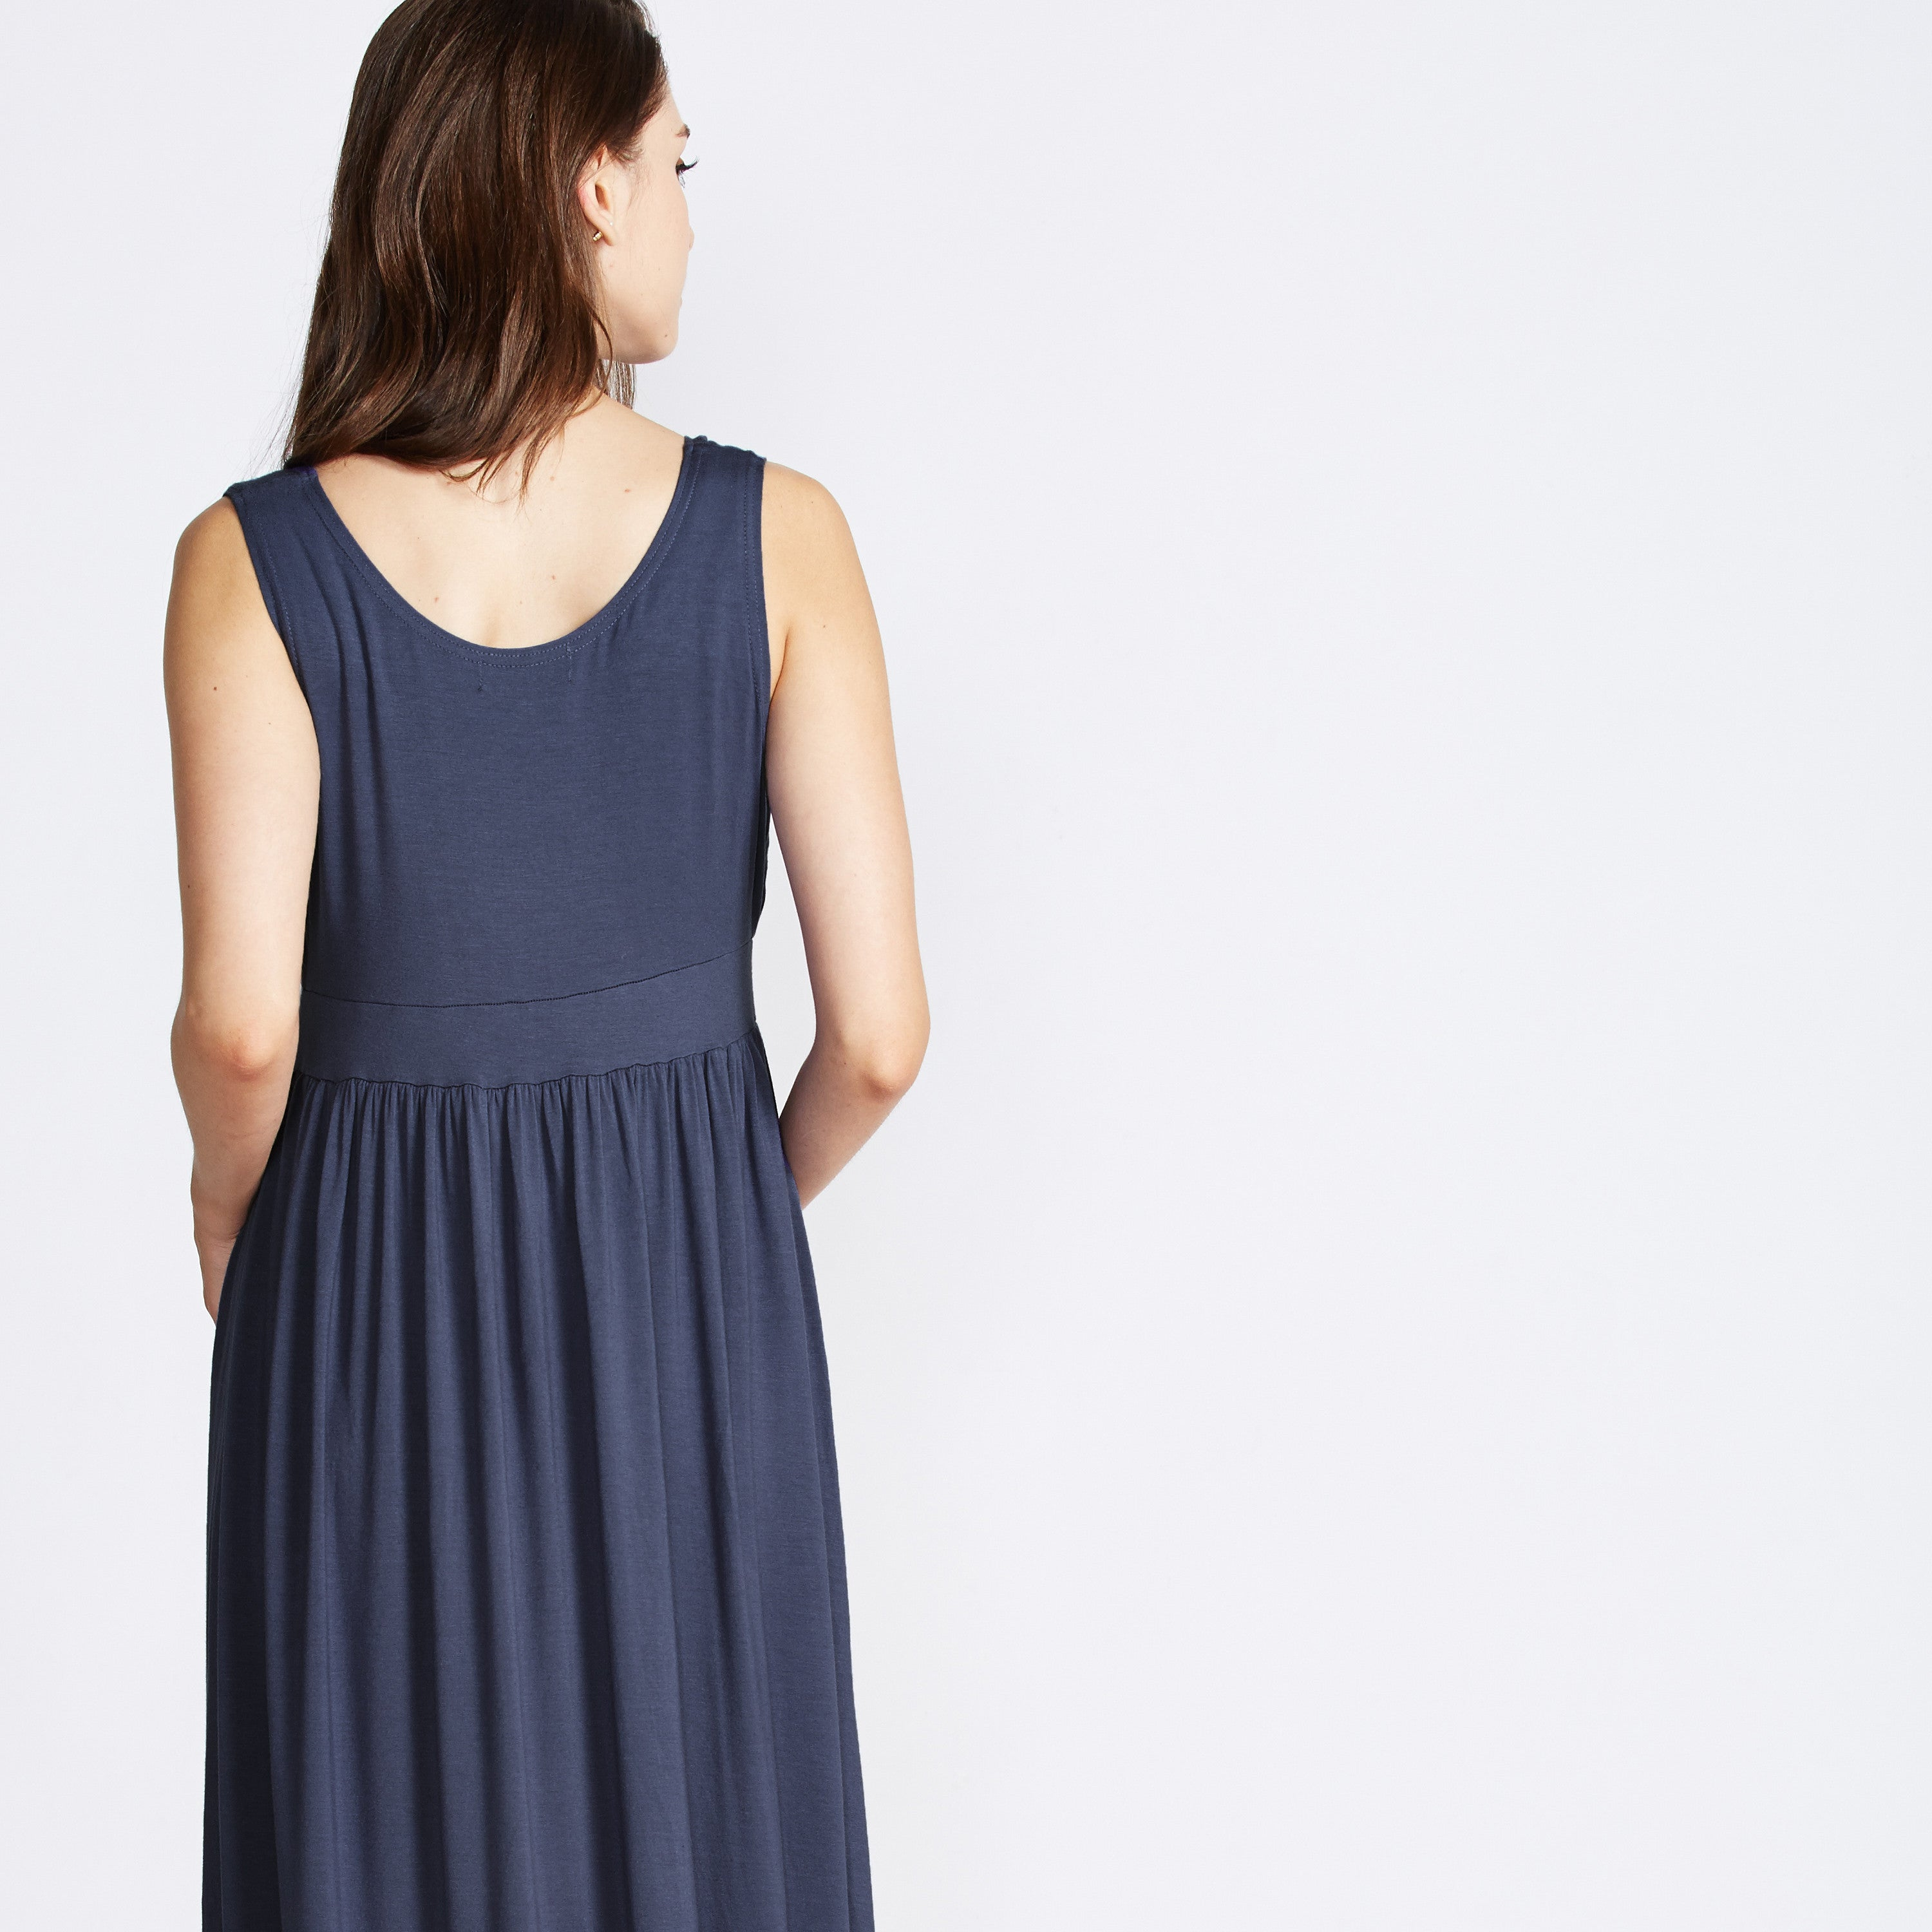 nursing maxi dress navy